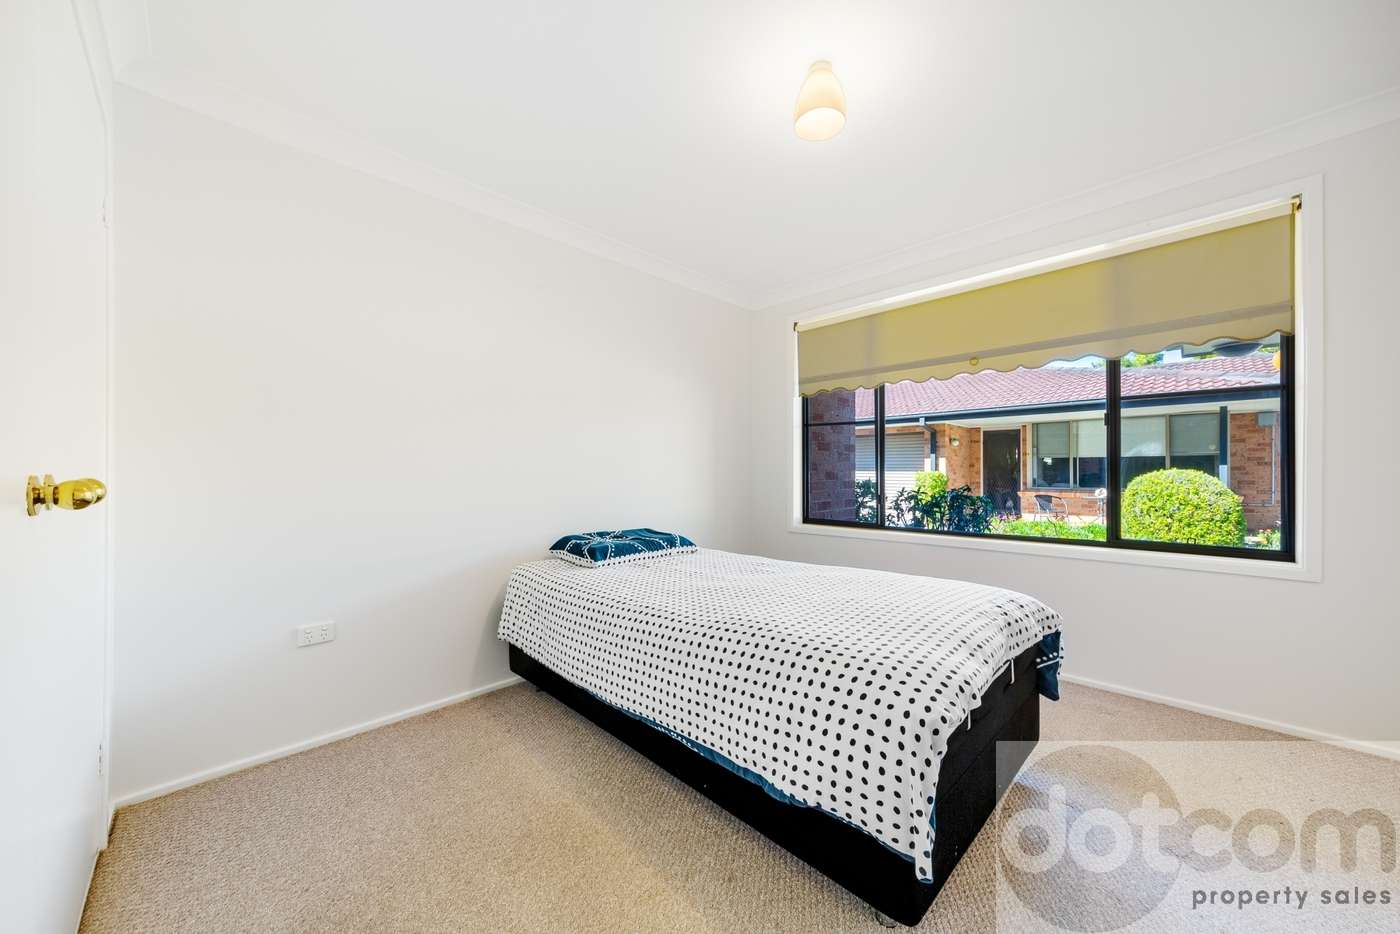 Sixth view of Homely villa listing, 2/207 Albany Street, Point Frederick NSW 2250